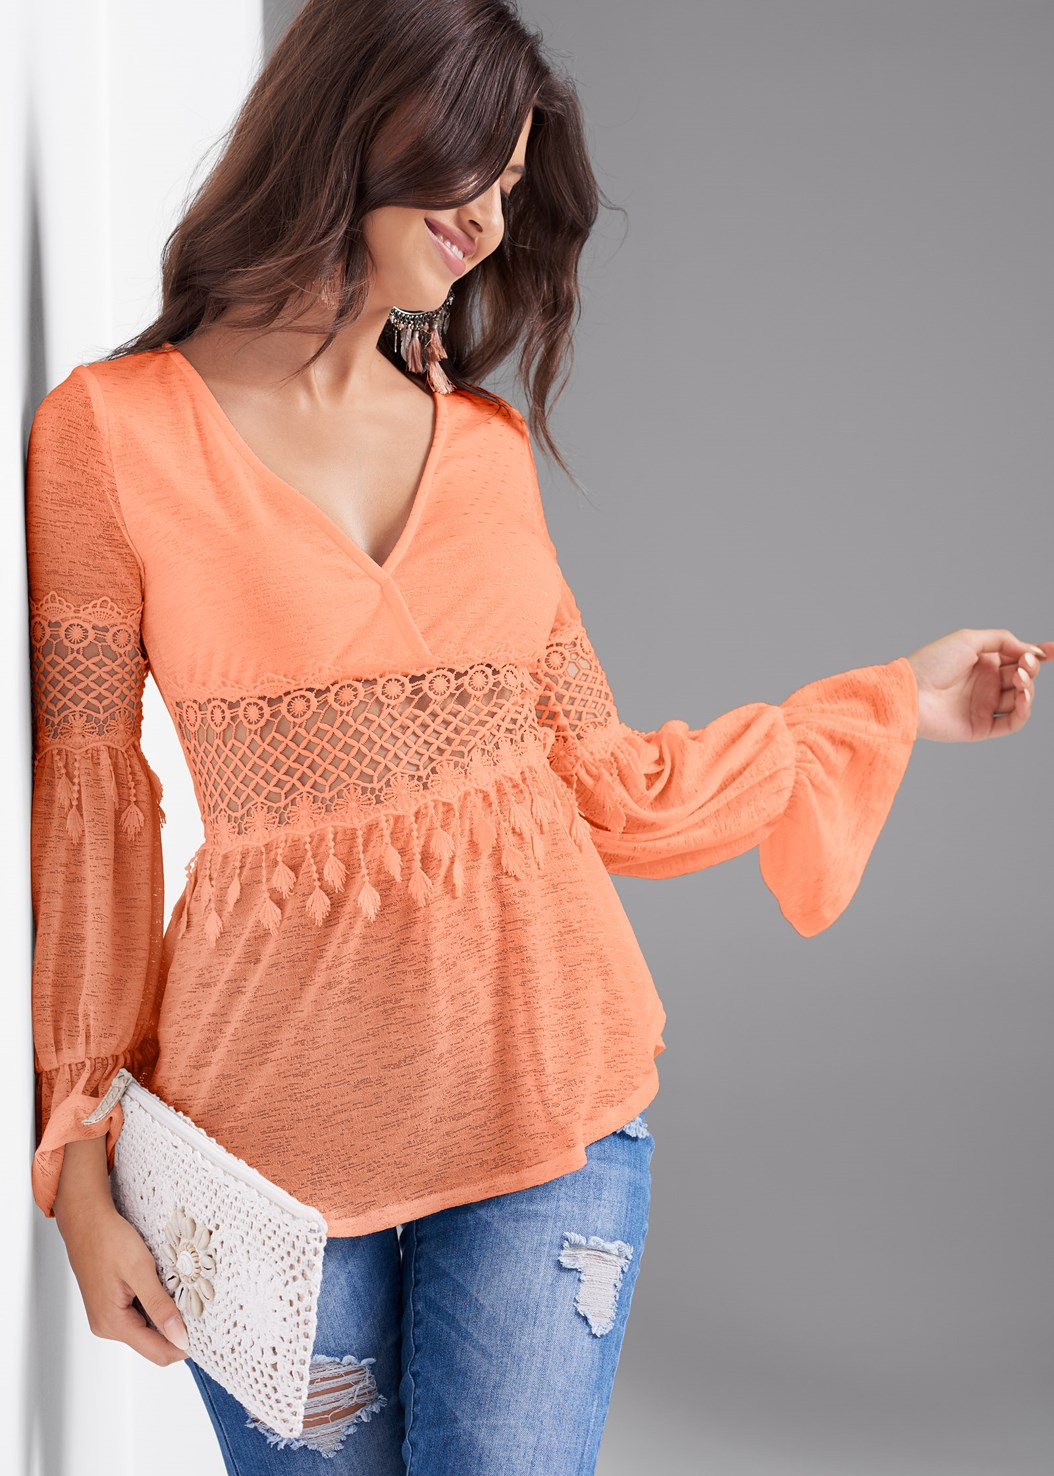 Crochet Bell Sleeve Top,Triangle Hem Jeans,Nubra Ultralite,Tassel Detail Hoop Earrings